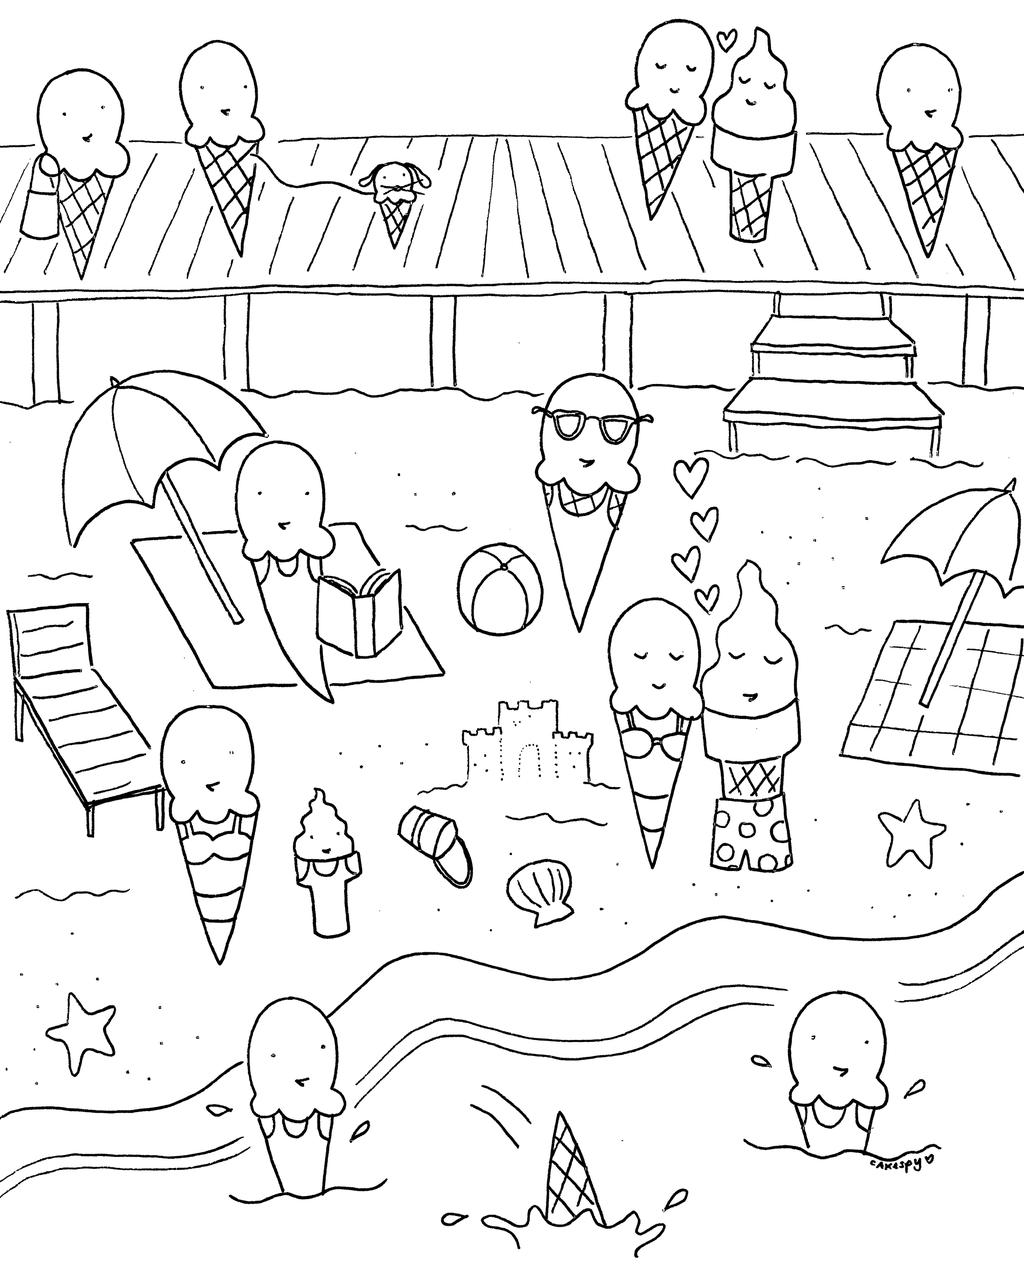 Free Ice Cream Mindfulness Coloring Pages printable